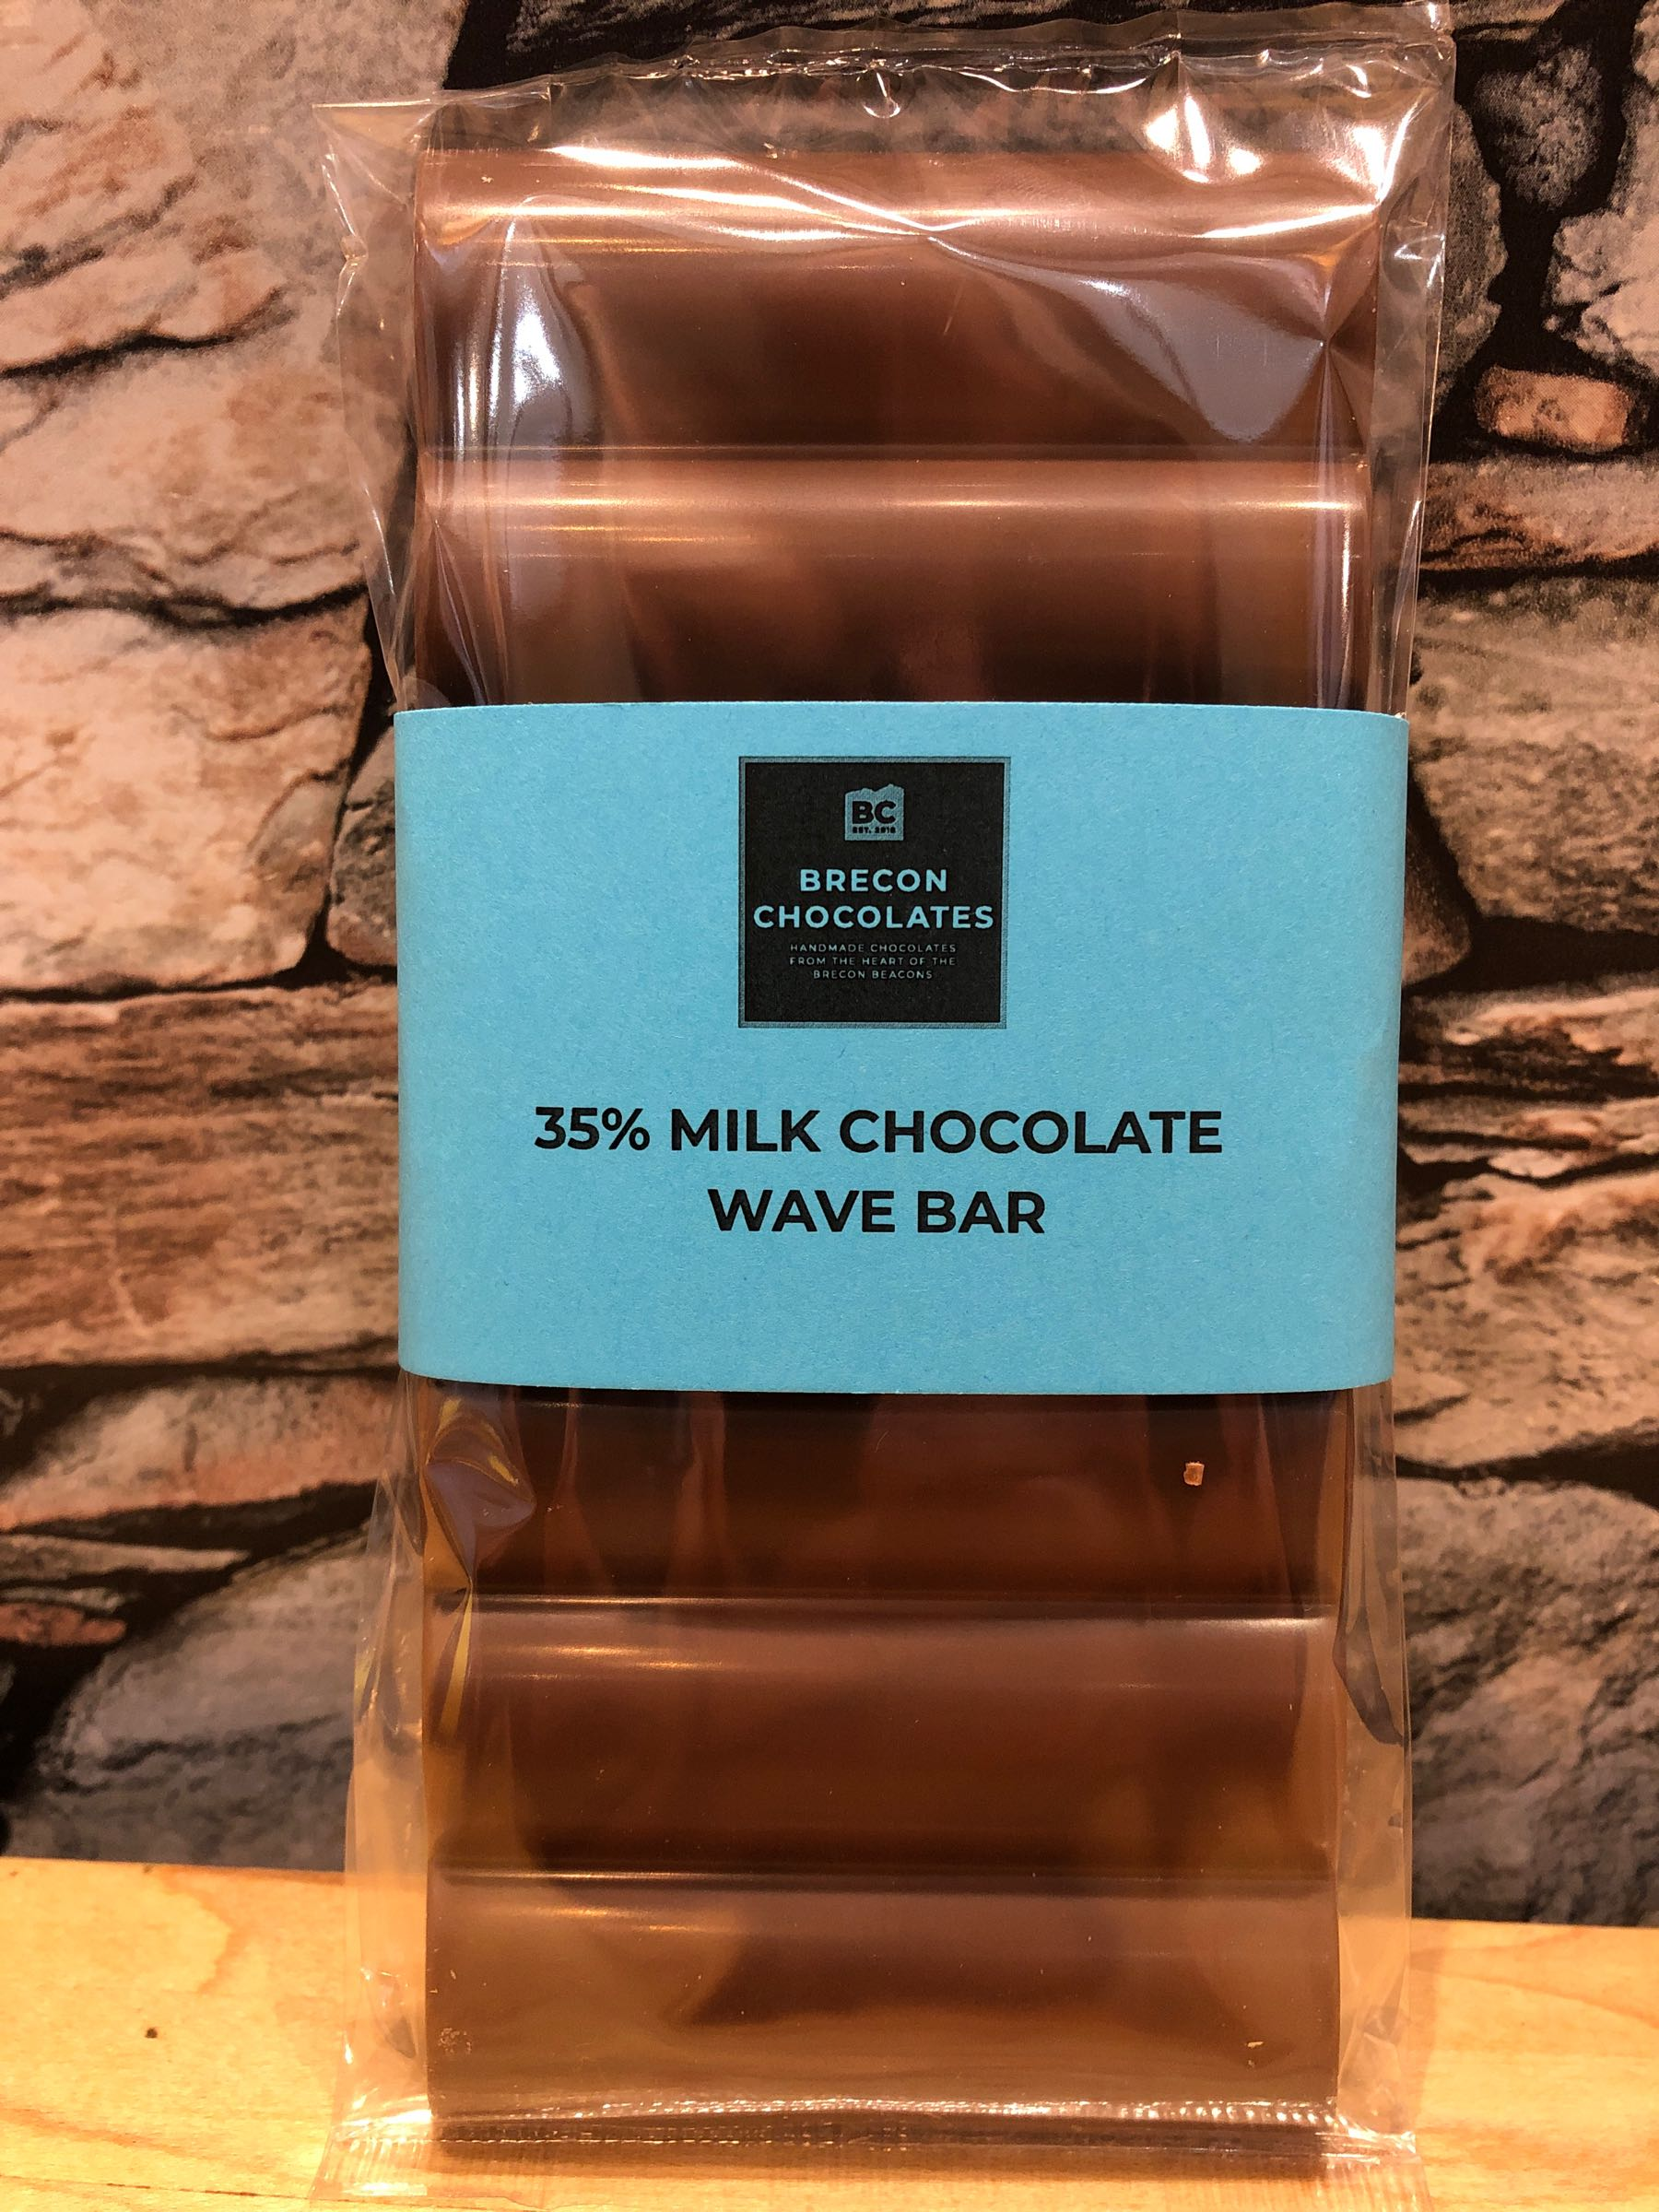 35% Milk Chocolate Wave Bar